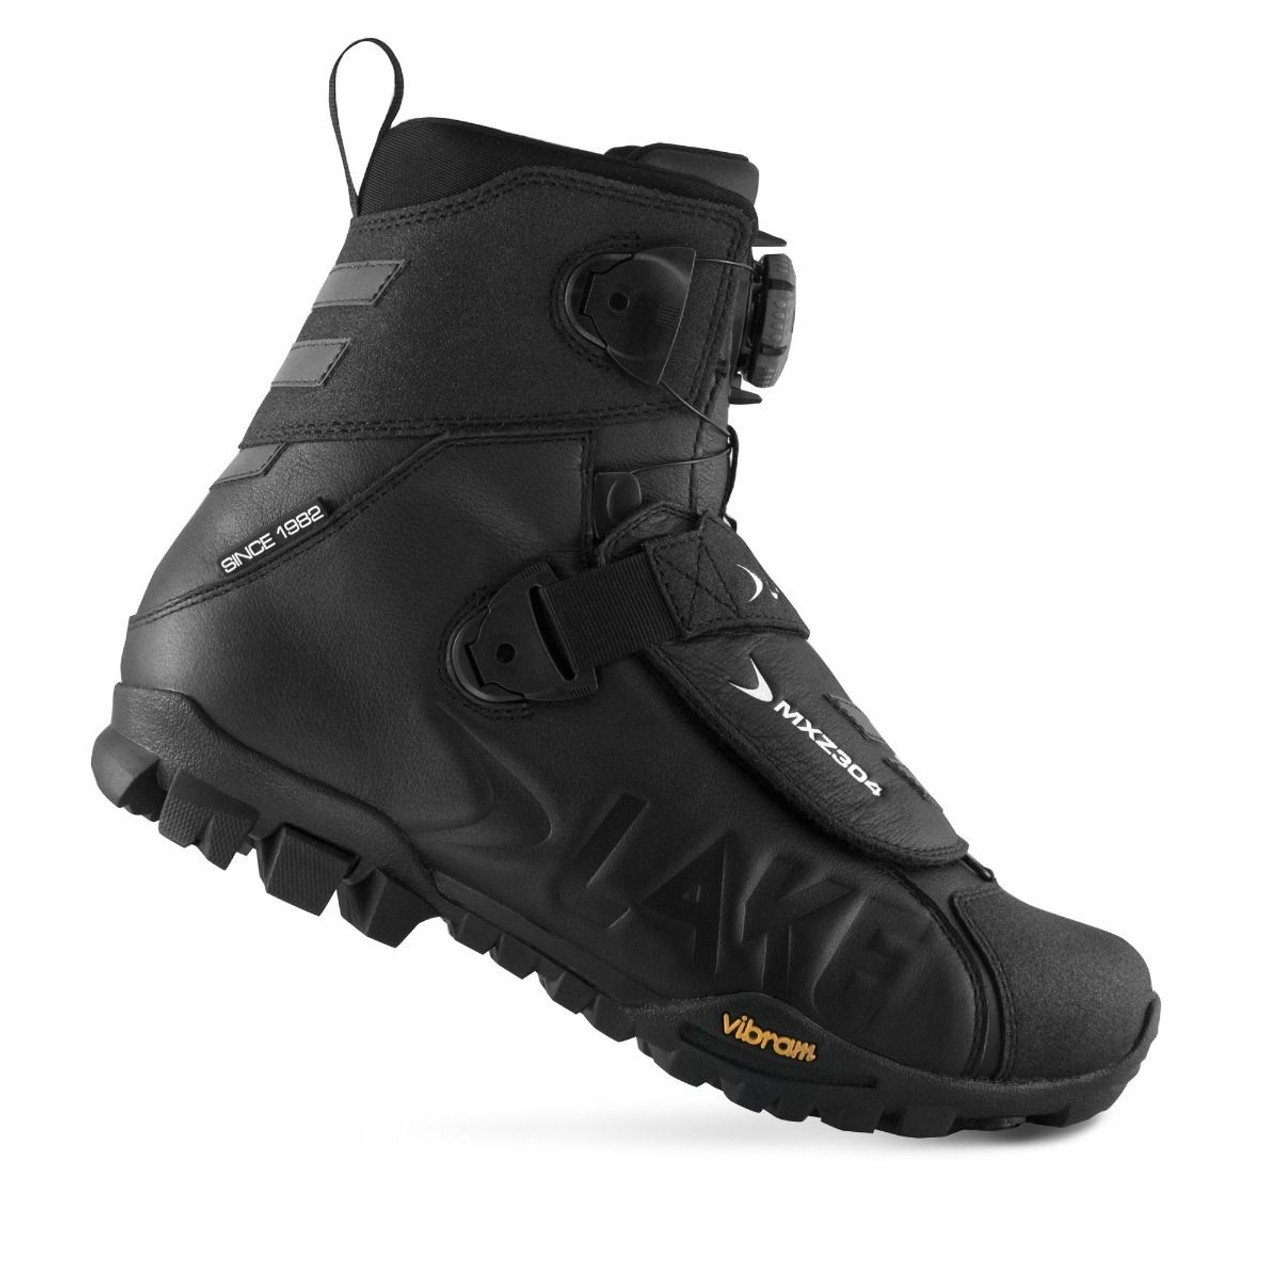 Lake MXZ304 Winter Boot Wide Fit Black All Sizes